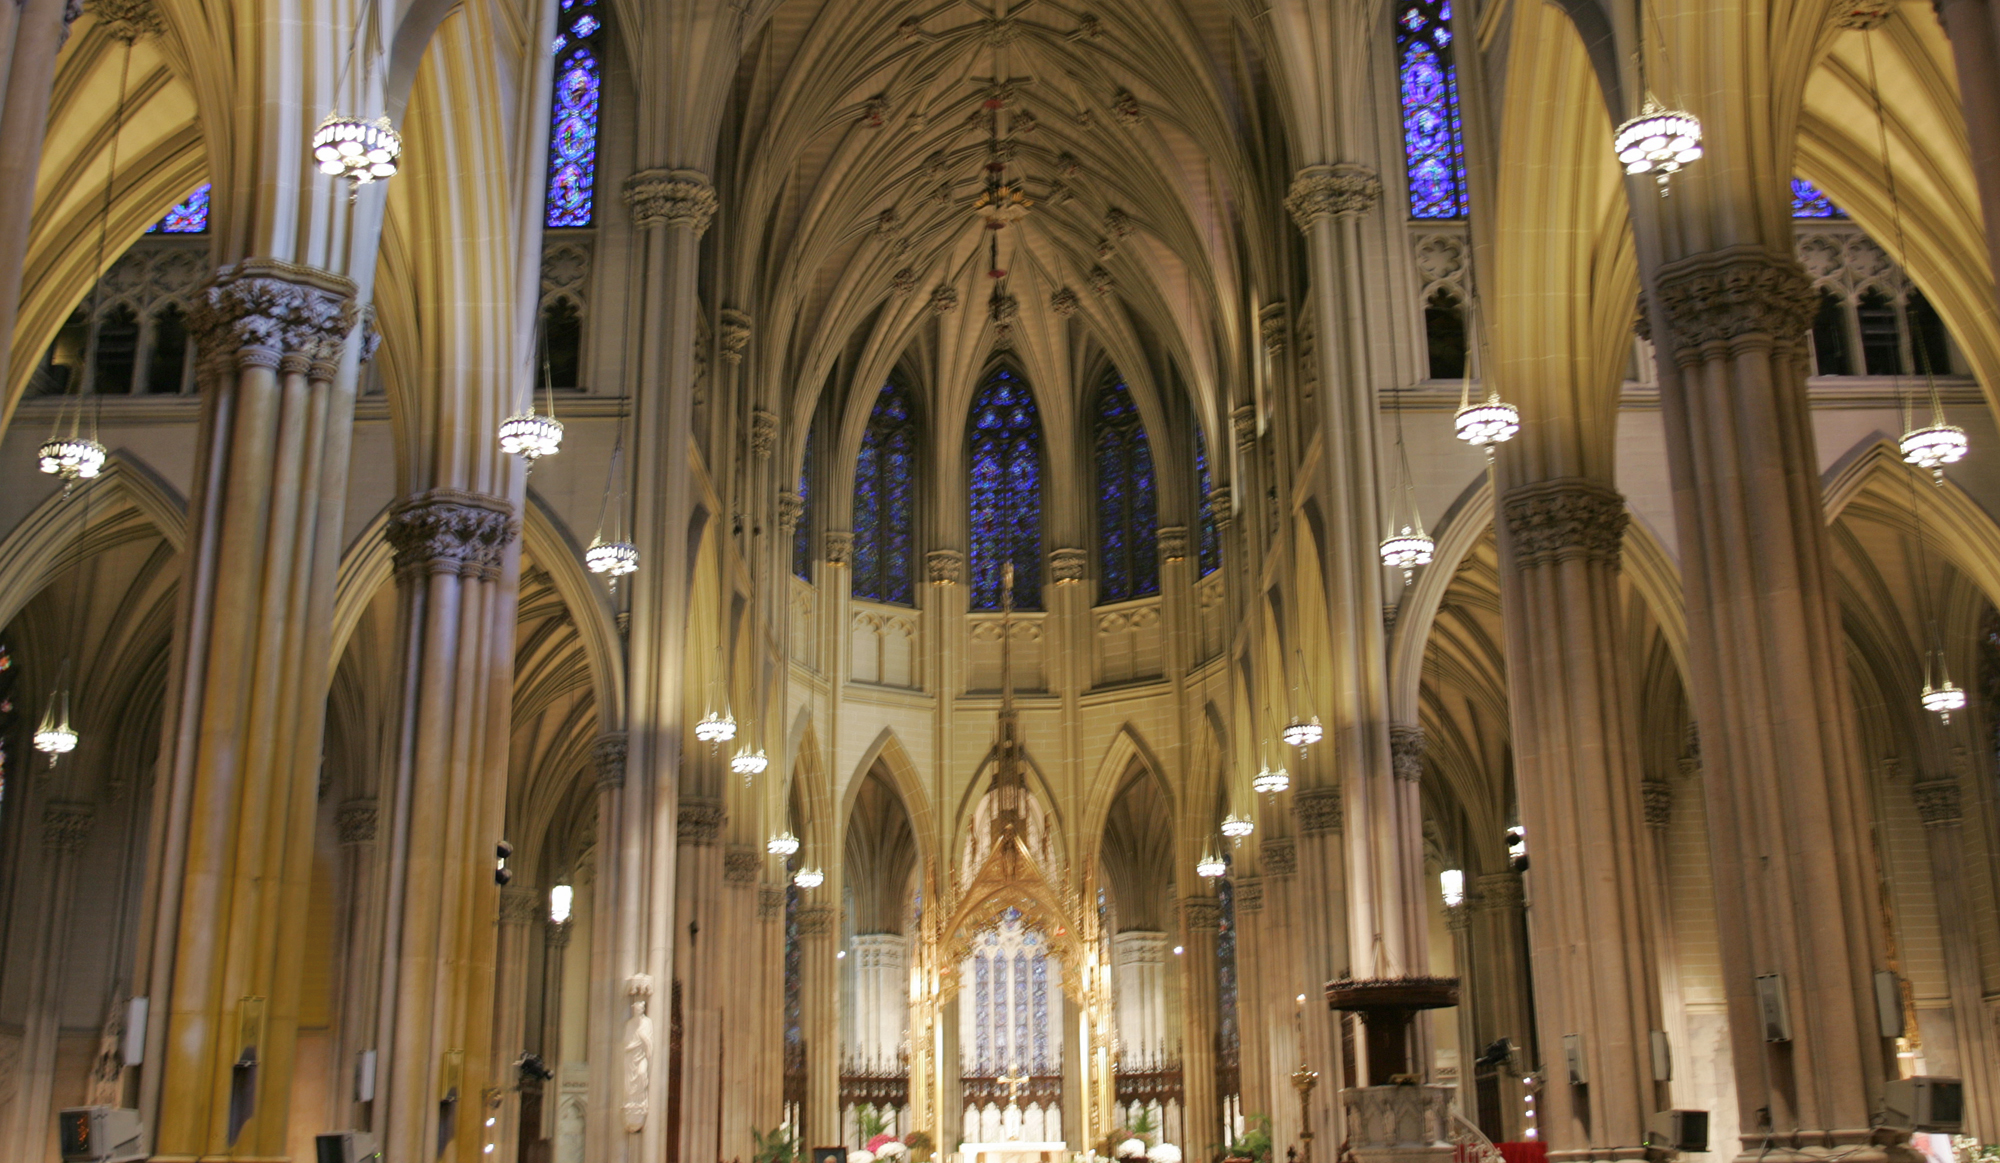 St Patrick's Church, grand interior